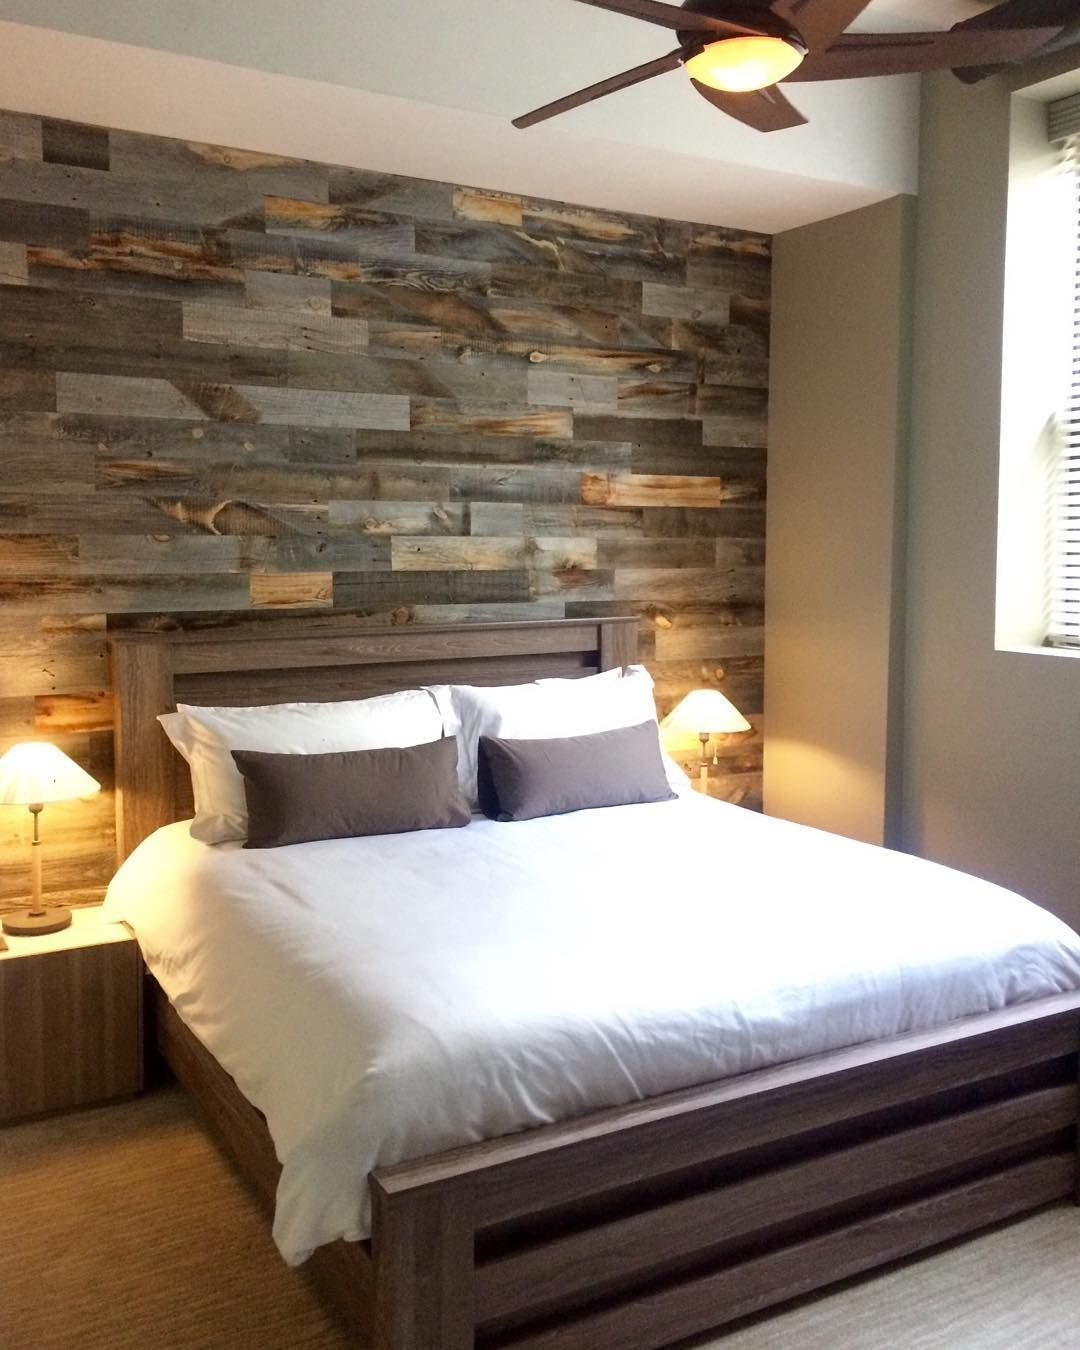 Diy Easy Peel And Stick Wood Wall Decor | Pallets, Square Feet And Throughout Most Current Wall Accents With Pallets (View 4 of 15)